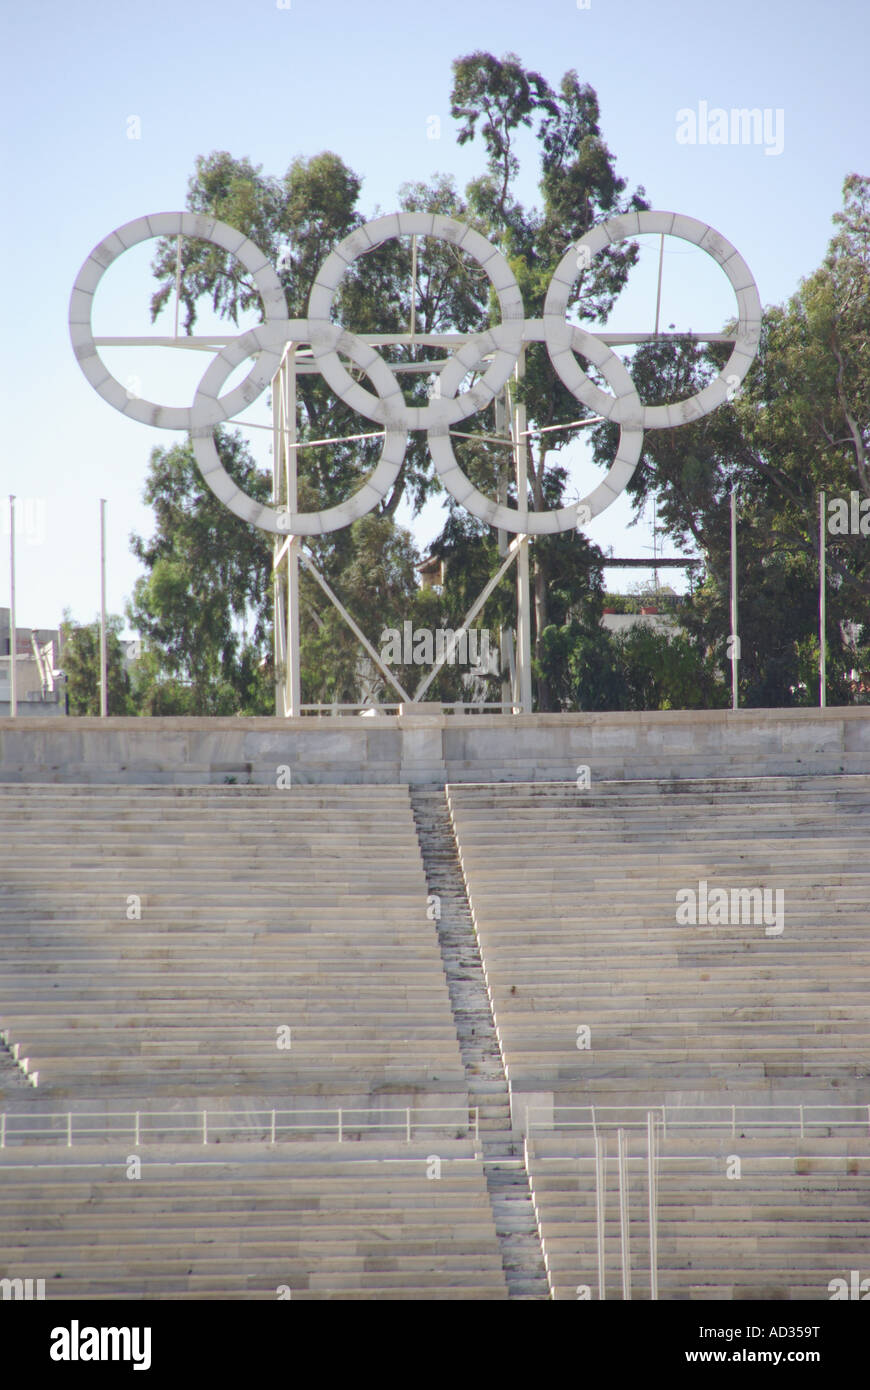 Athens the Panathinaiko white marble arena location for the Greek Olympic Games of 1896 now a major tourist attraction Stock Photo